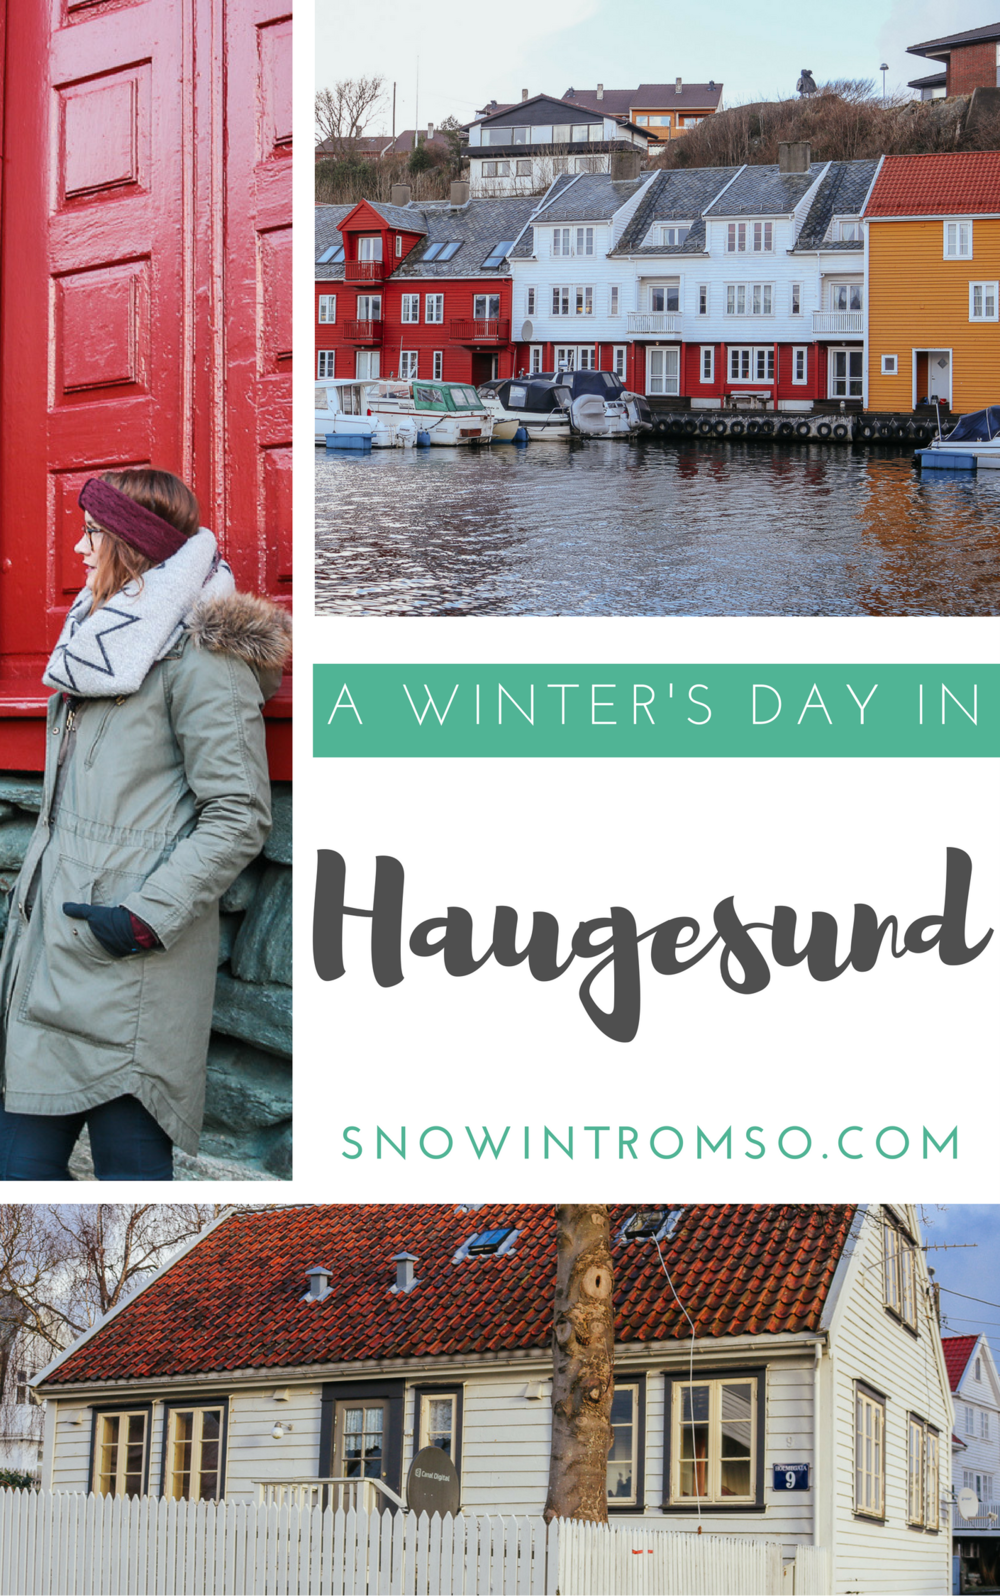 A winter's day in Haugesund on the west coast of Norway